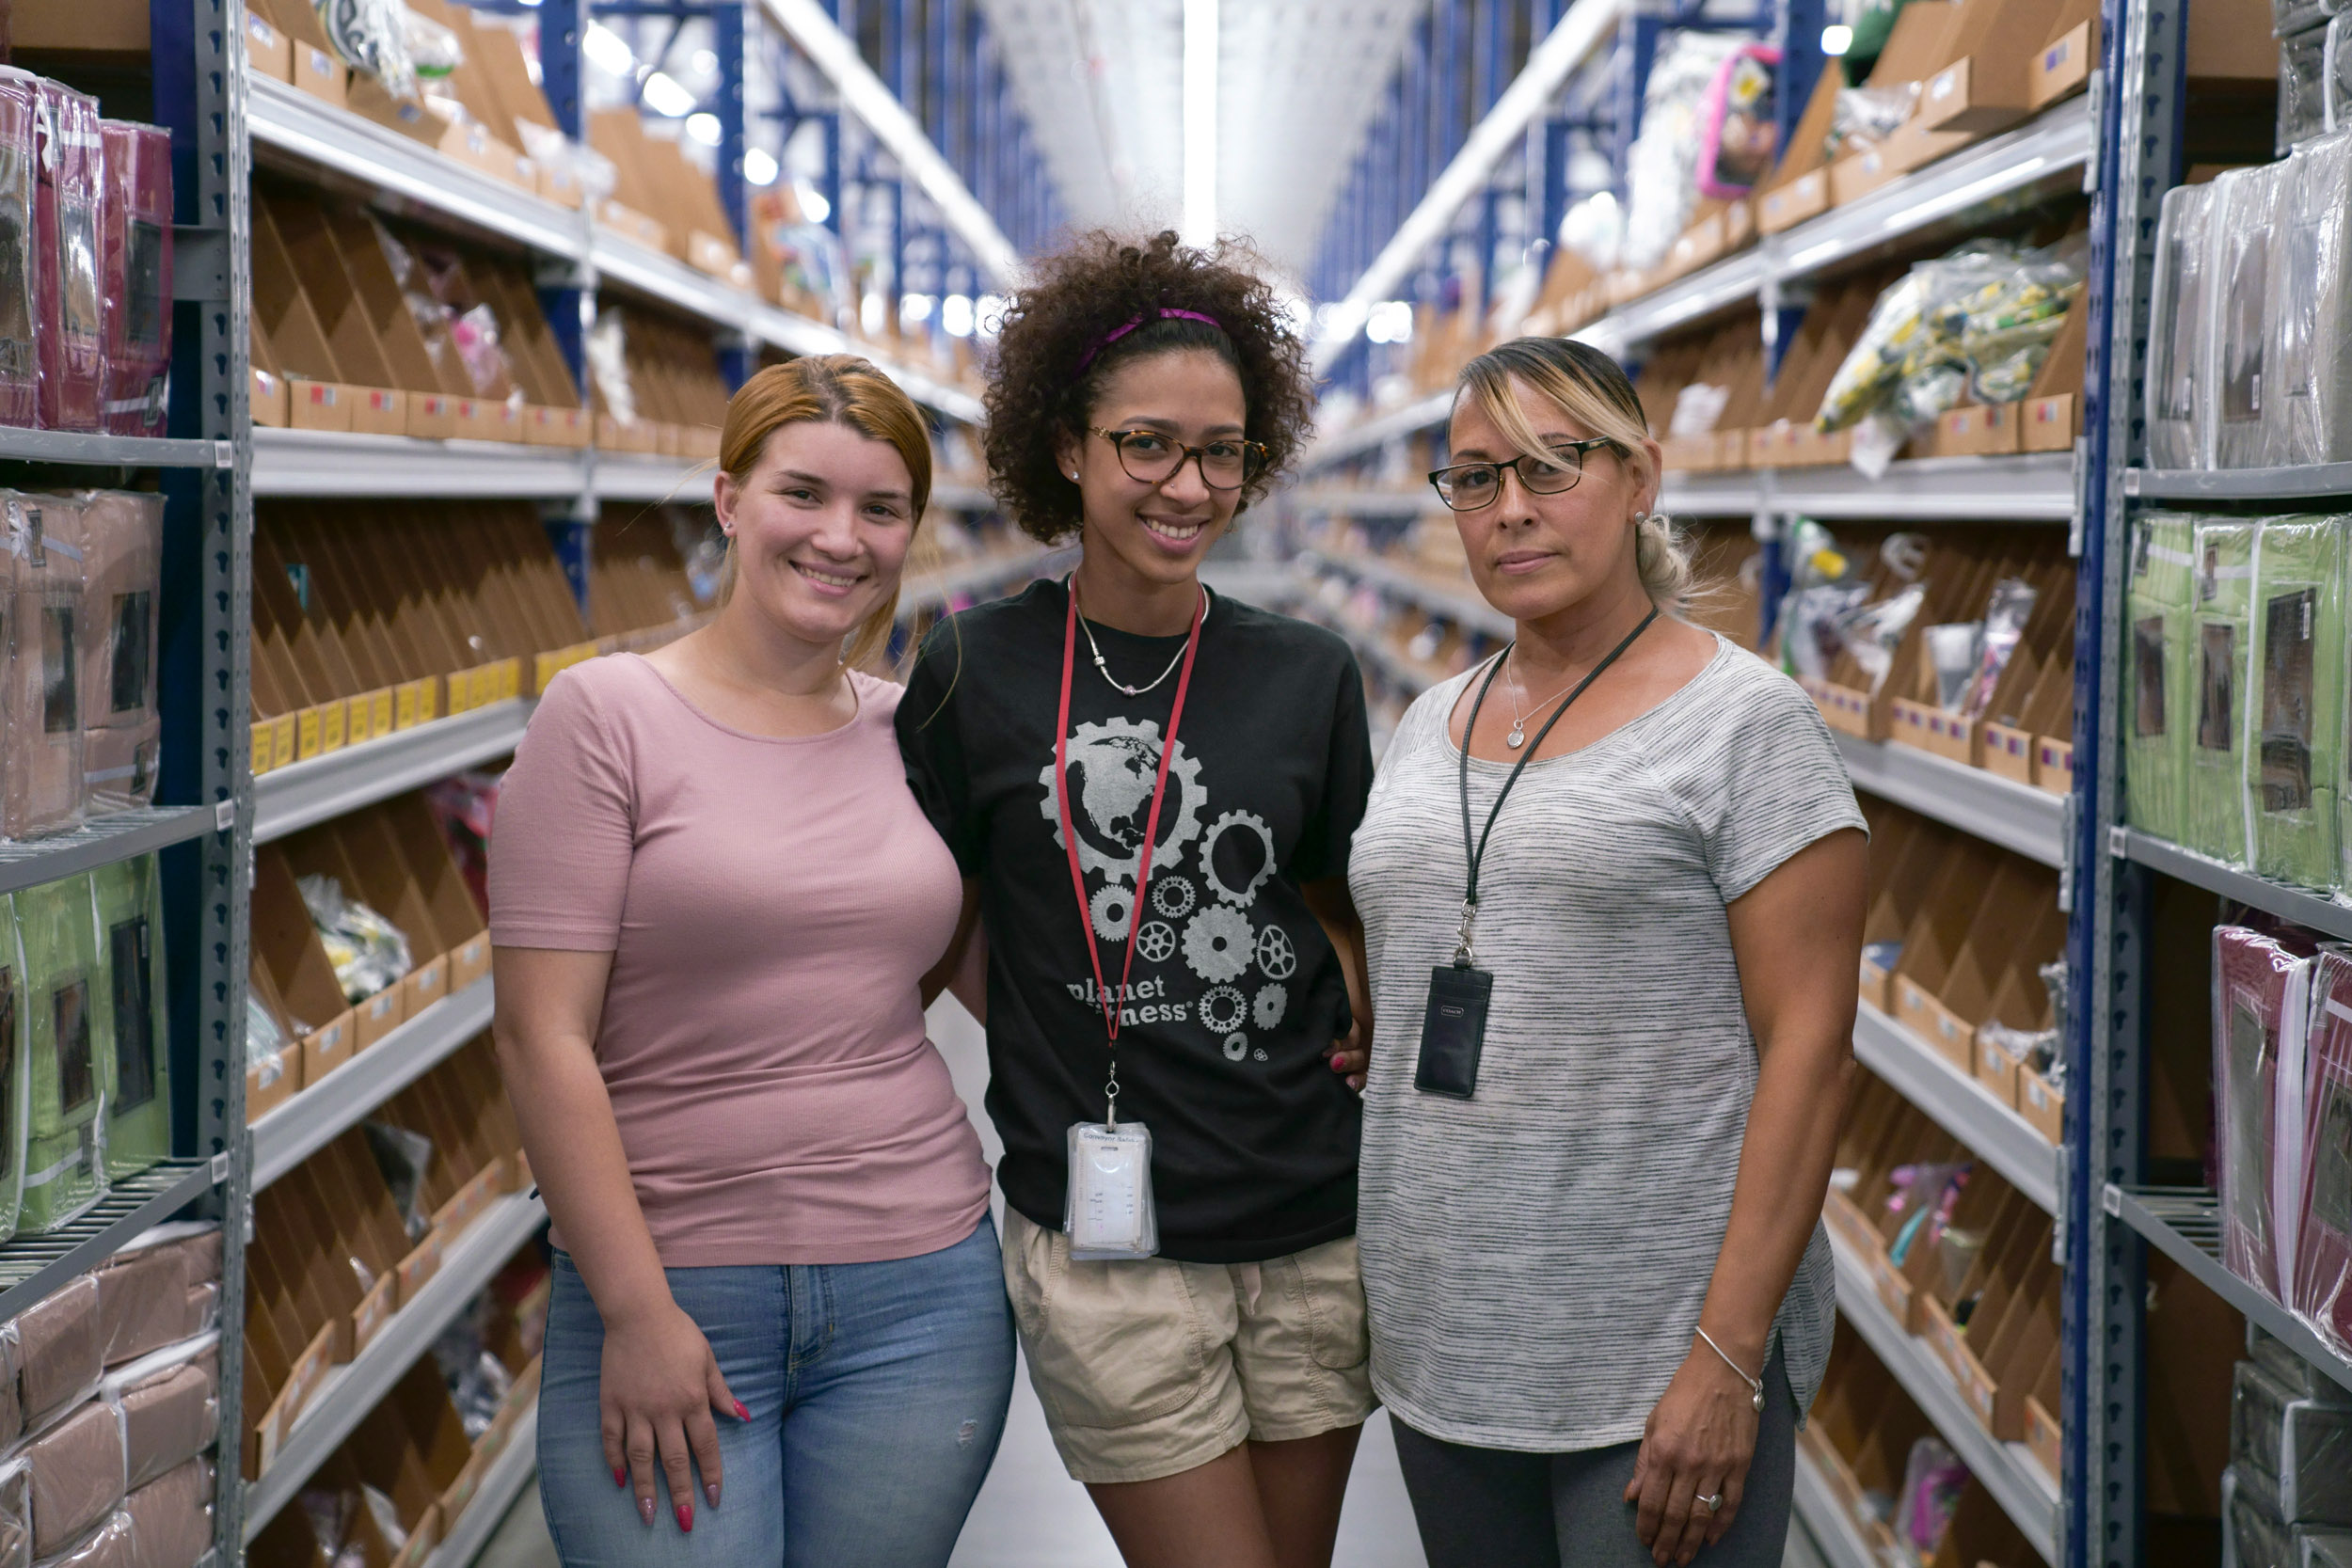 Zulily Team Members in a fulfillment center aisle.